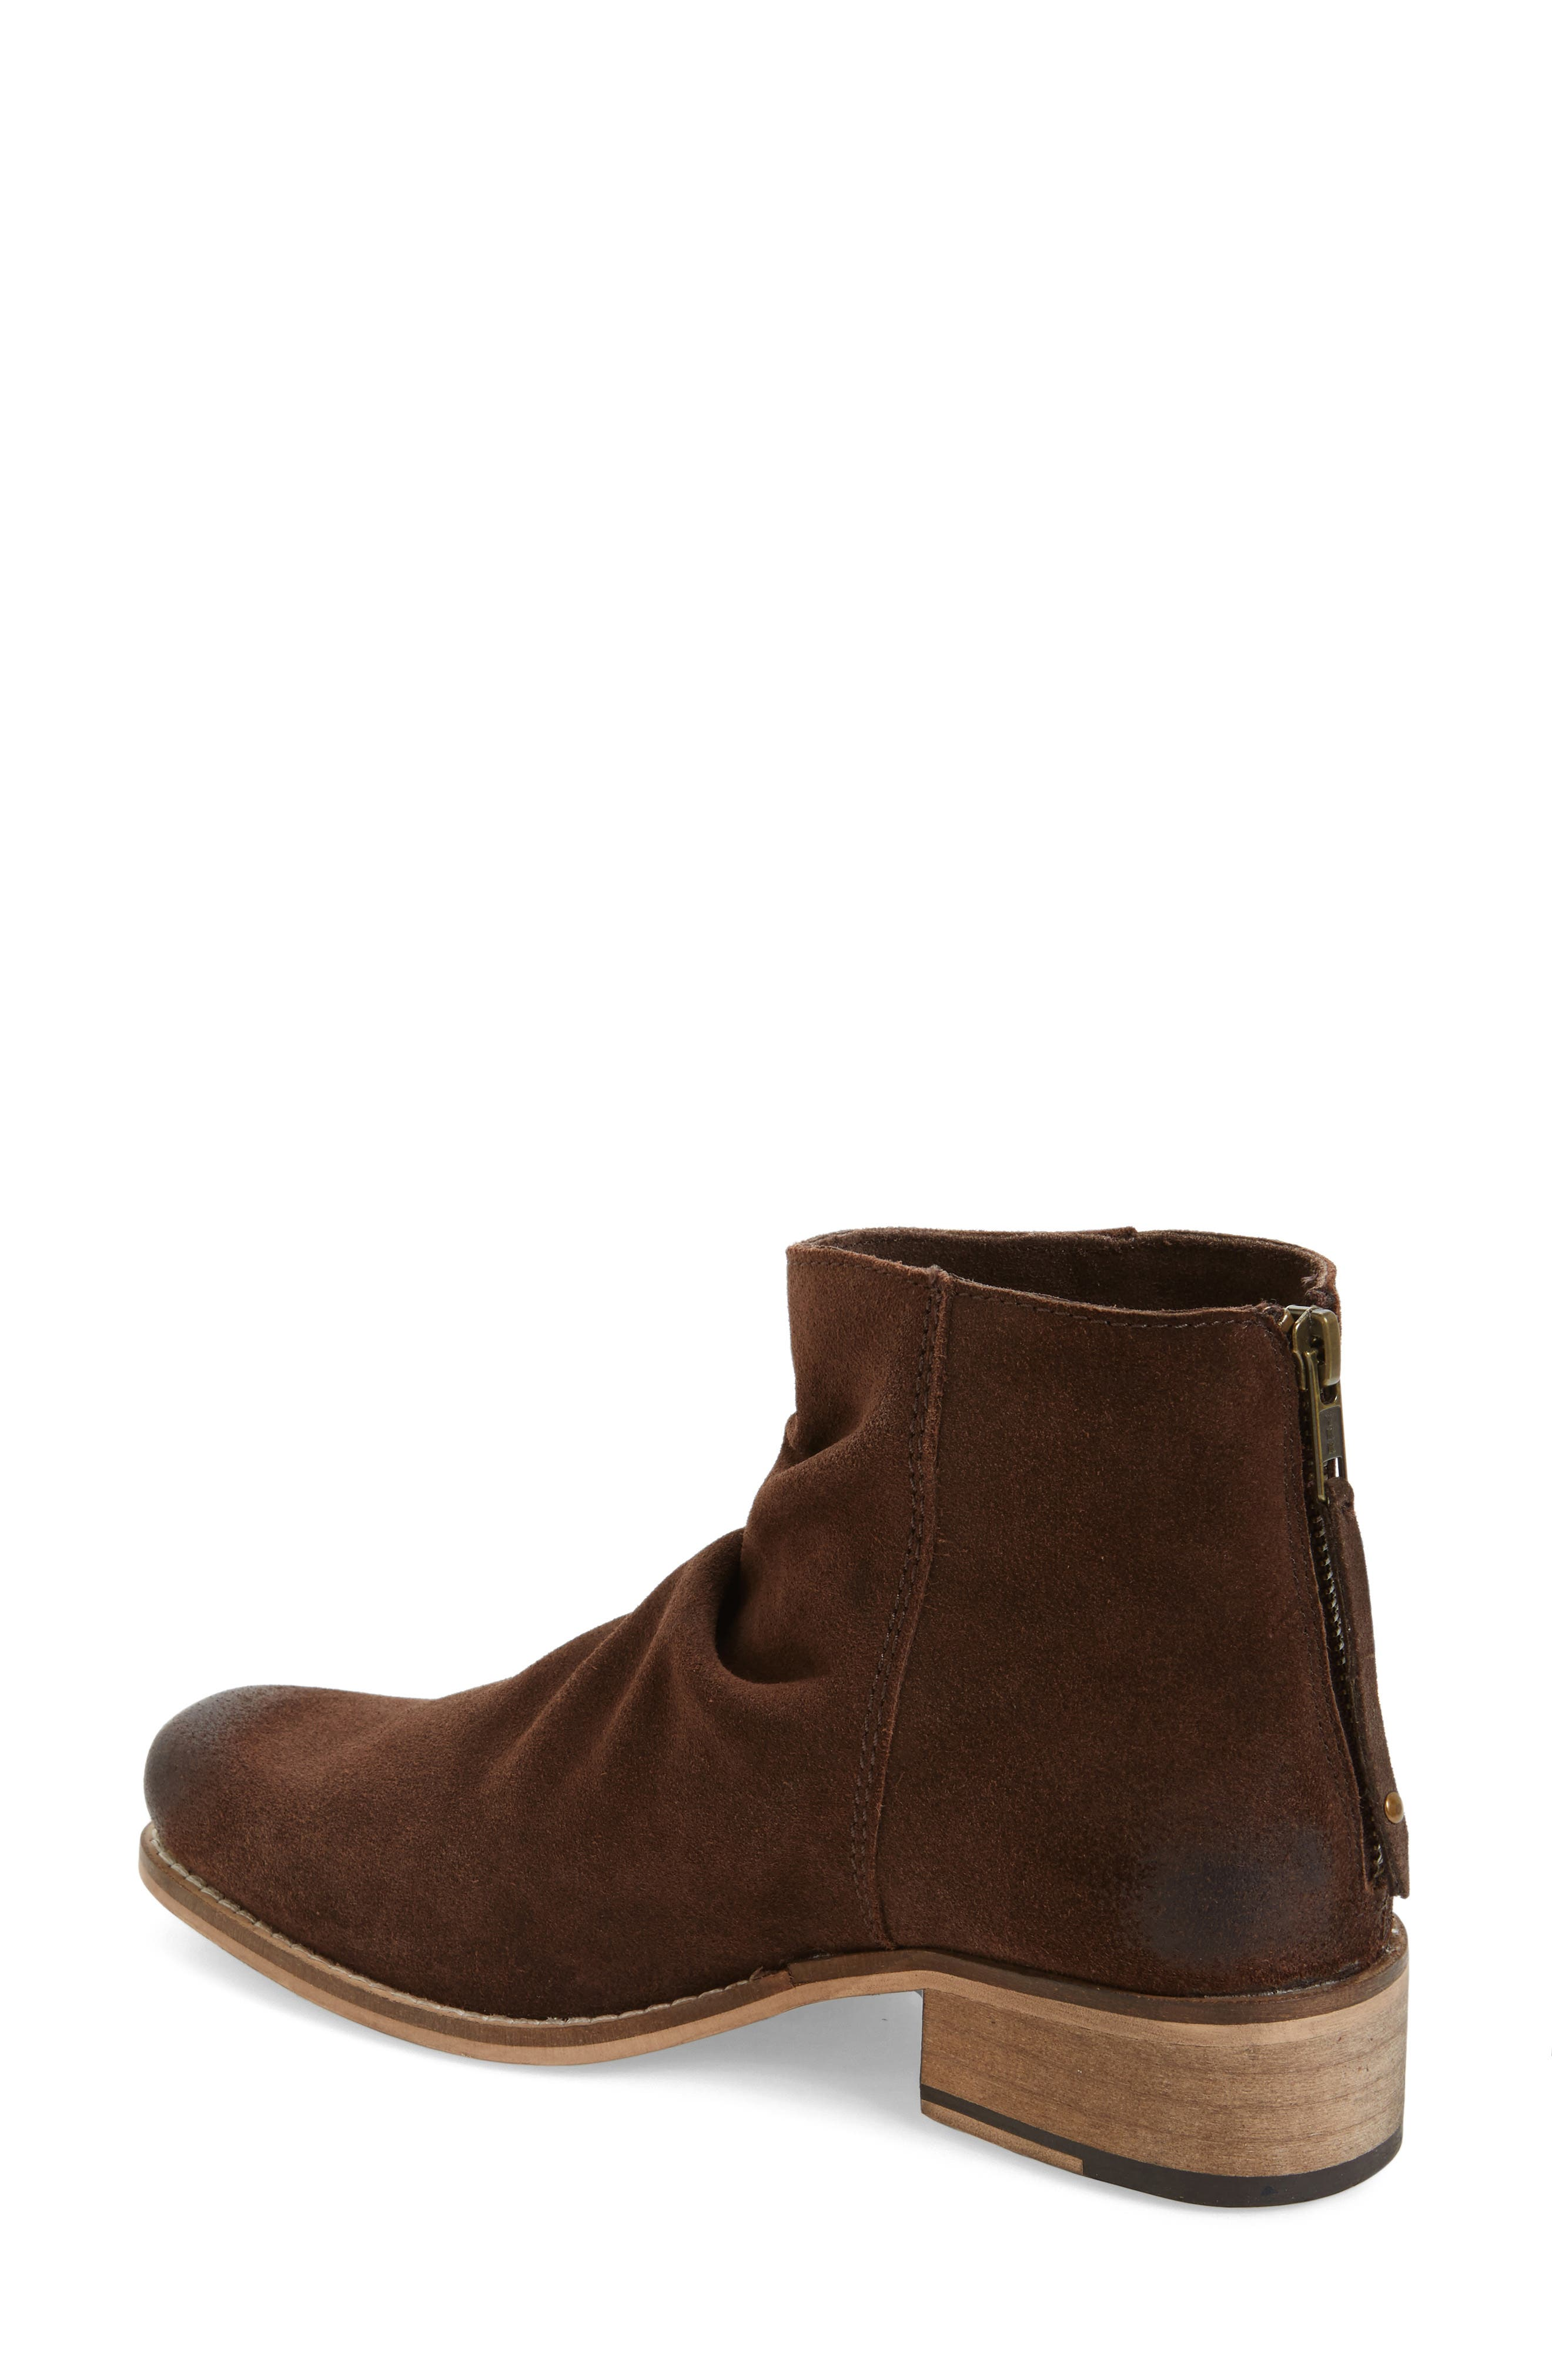 Unbridled Sloan Slouchy Bootie,                             Alternate thumbnail 2, color,                             Dark Brown Leather